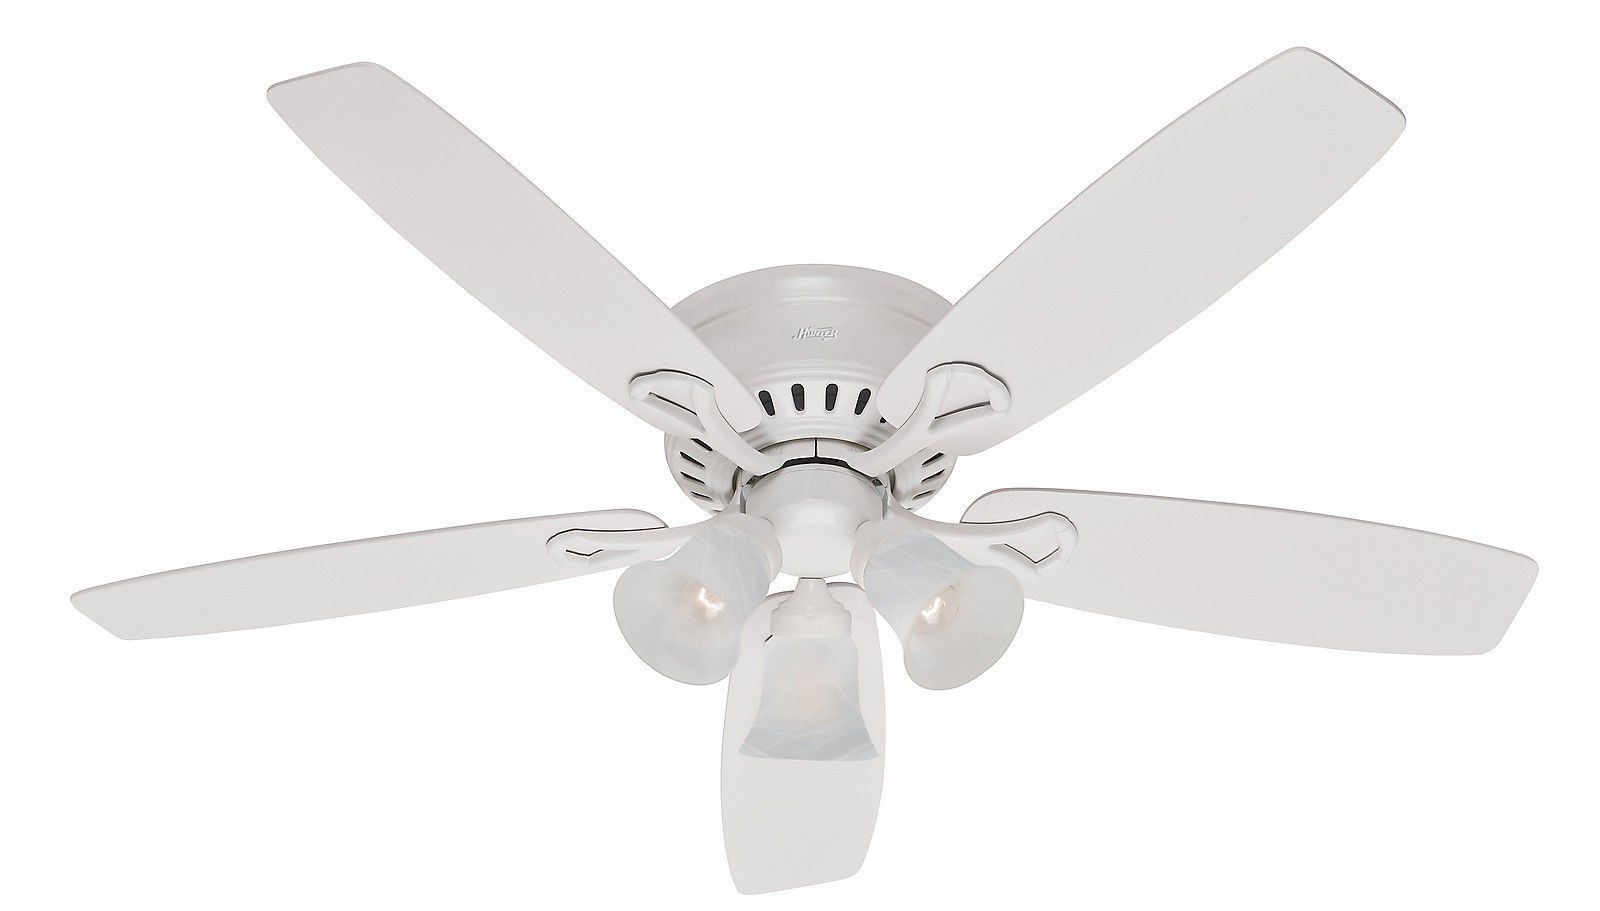 low profile ceiling fan light photo - 6